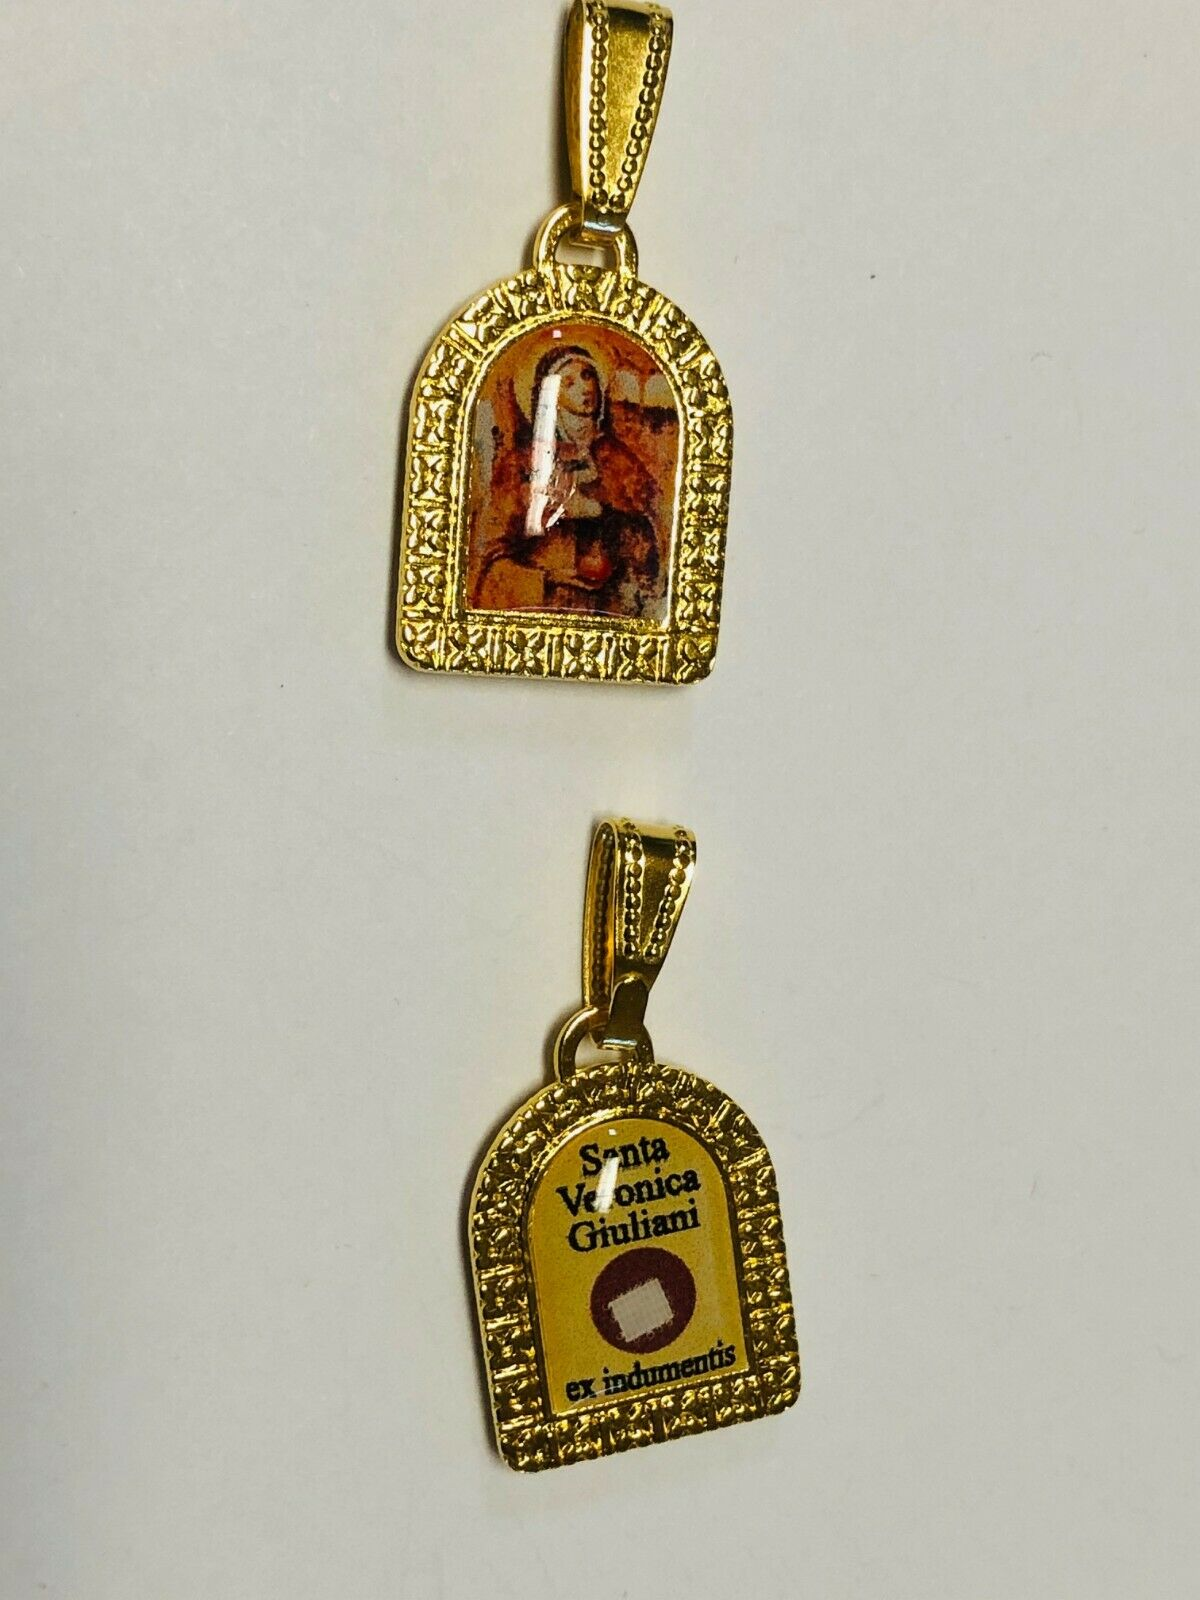 Saint Veronica Giuliani 3rd Class Relic, New from Italy**Donation Required***